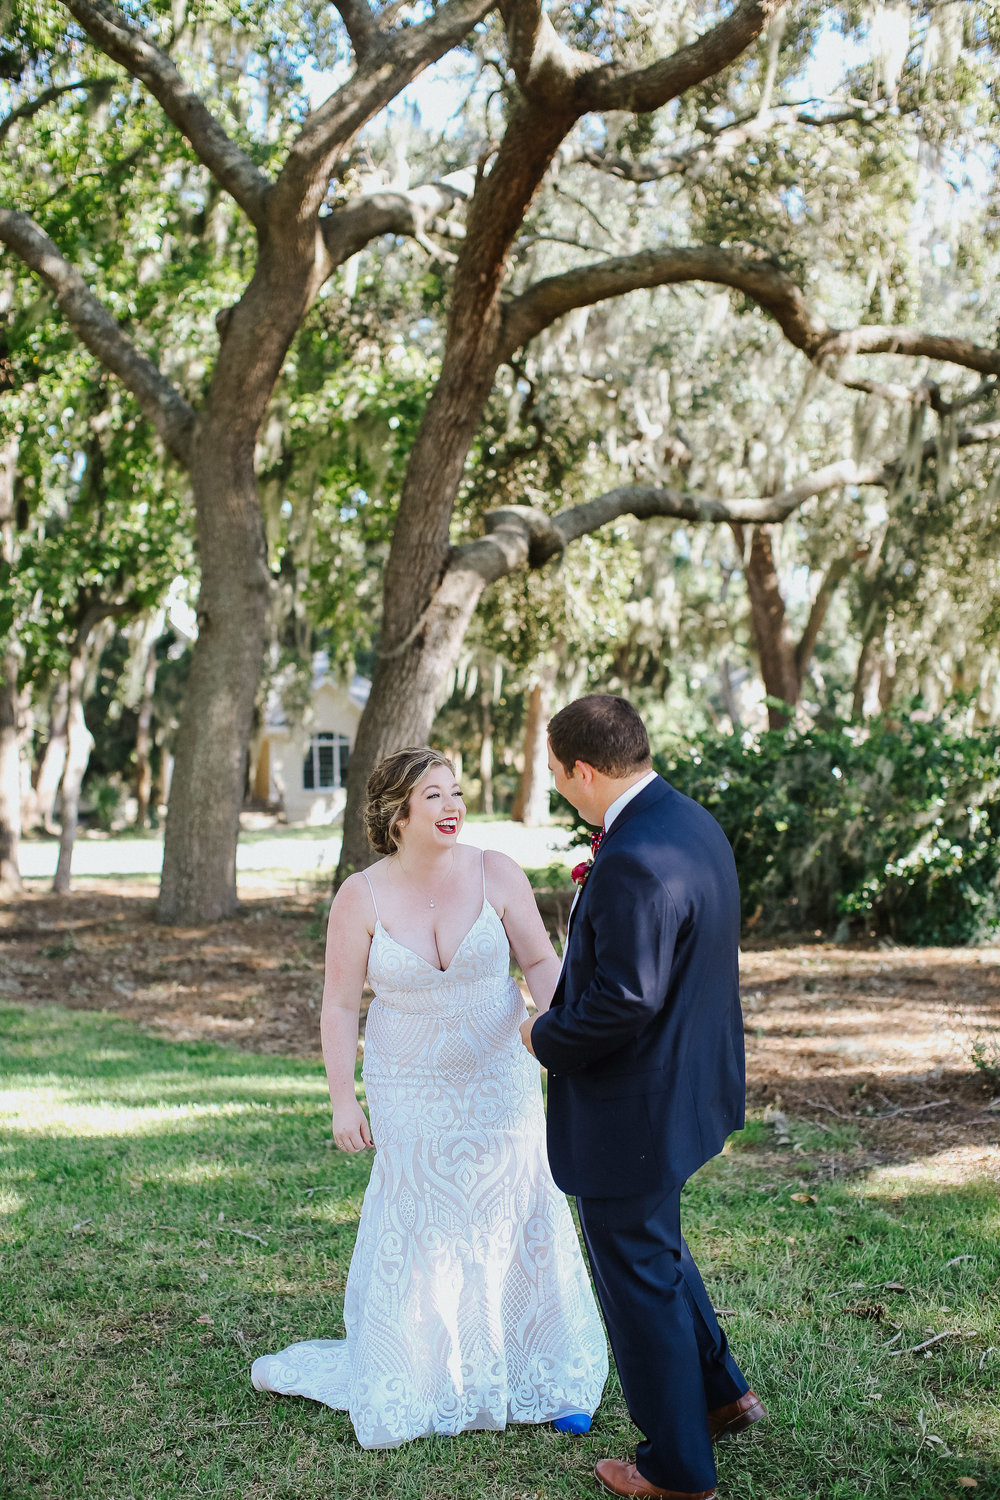 ivory_and_beau_savannah_bridal_shop_ivory_and_beau_bride_mary_kate_west_by_blush_by_hayley_paige_izzy_hudgins_photography_Savannah_wedding_dress_9.jpg